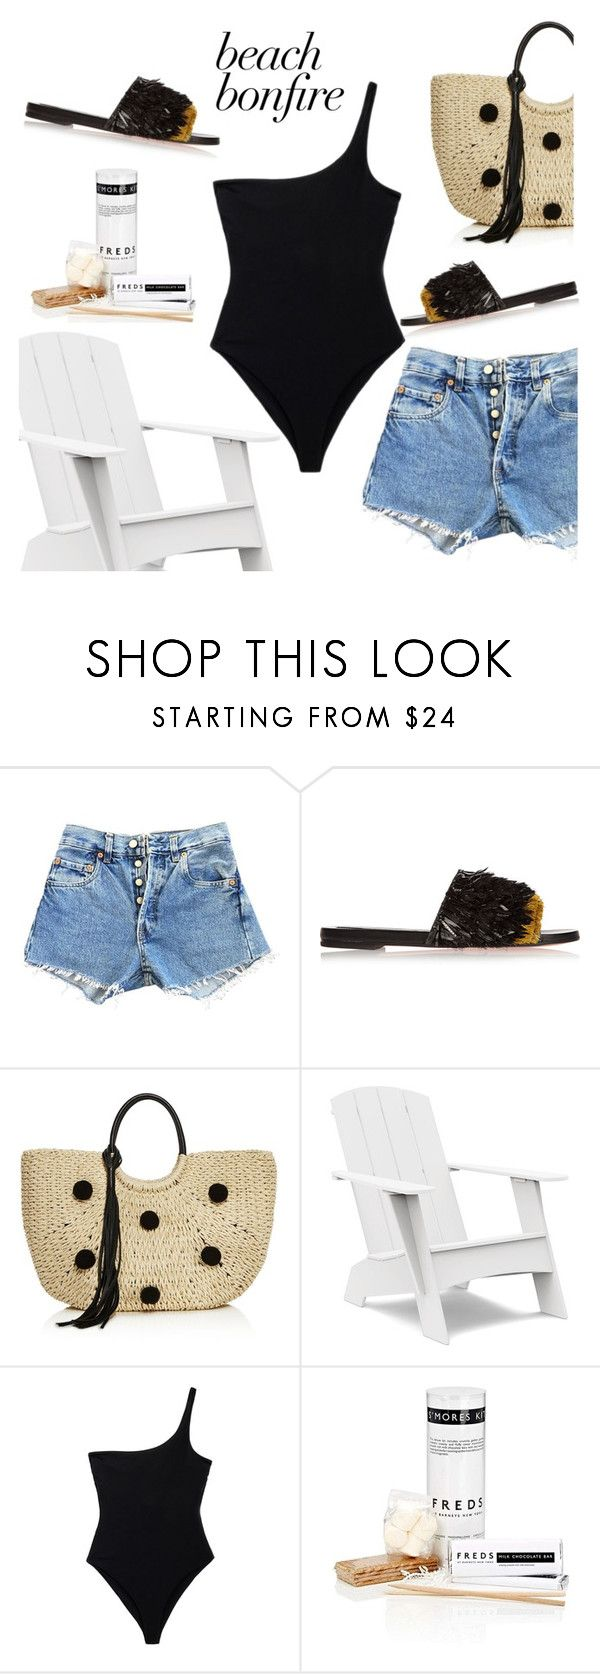 """""""Bonfire"""" by petra0710 ❤ liked on Polyvore featuring Levi's, Rochas, Rebecca Minkoff, Loll Designs, Mara Hoffman and FREDS at Barneys New York"""